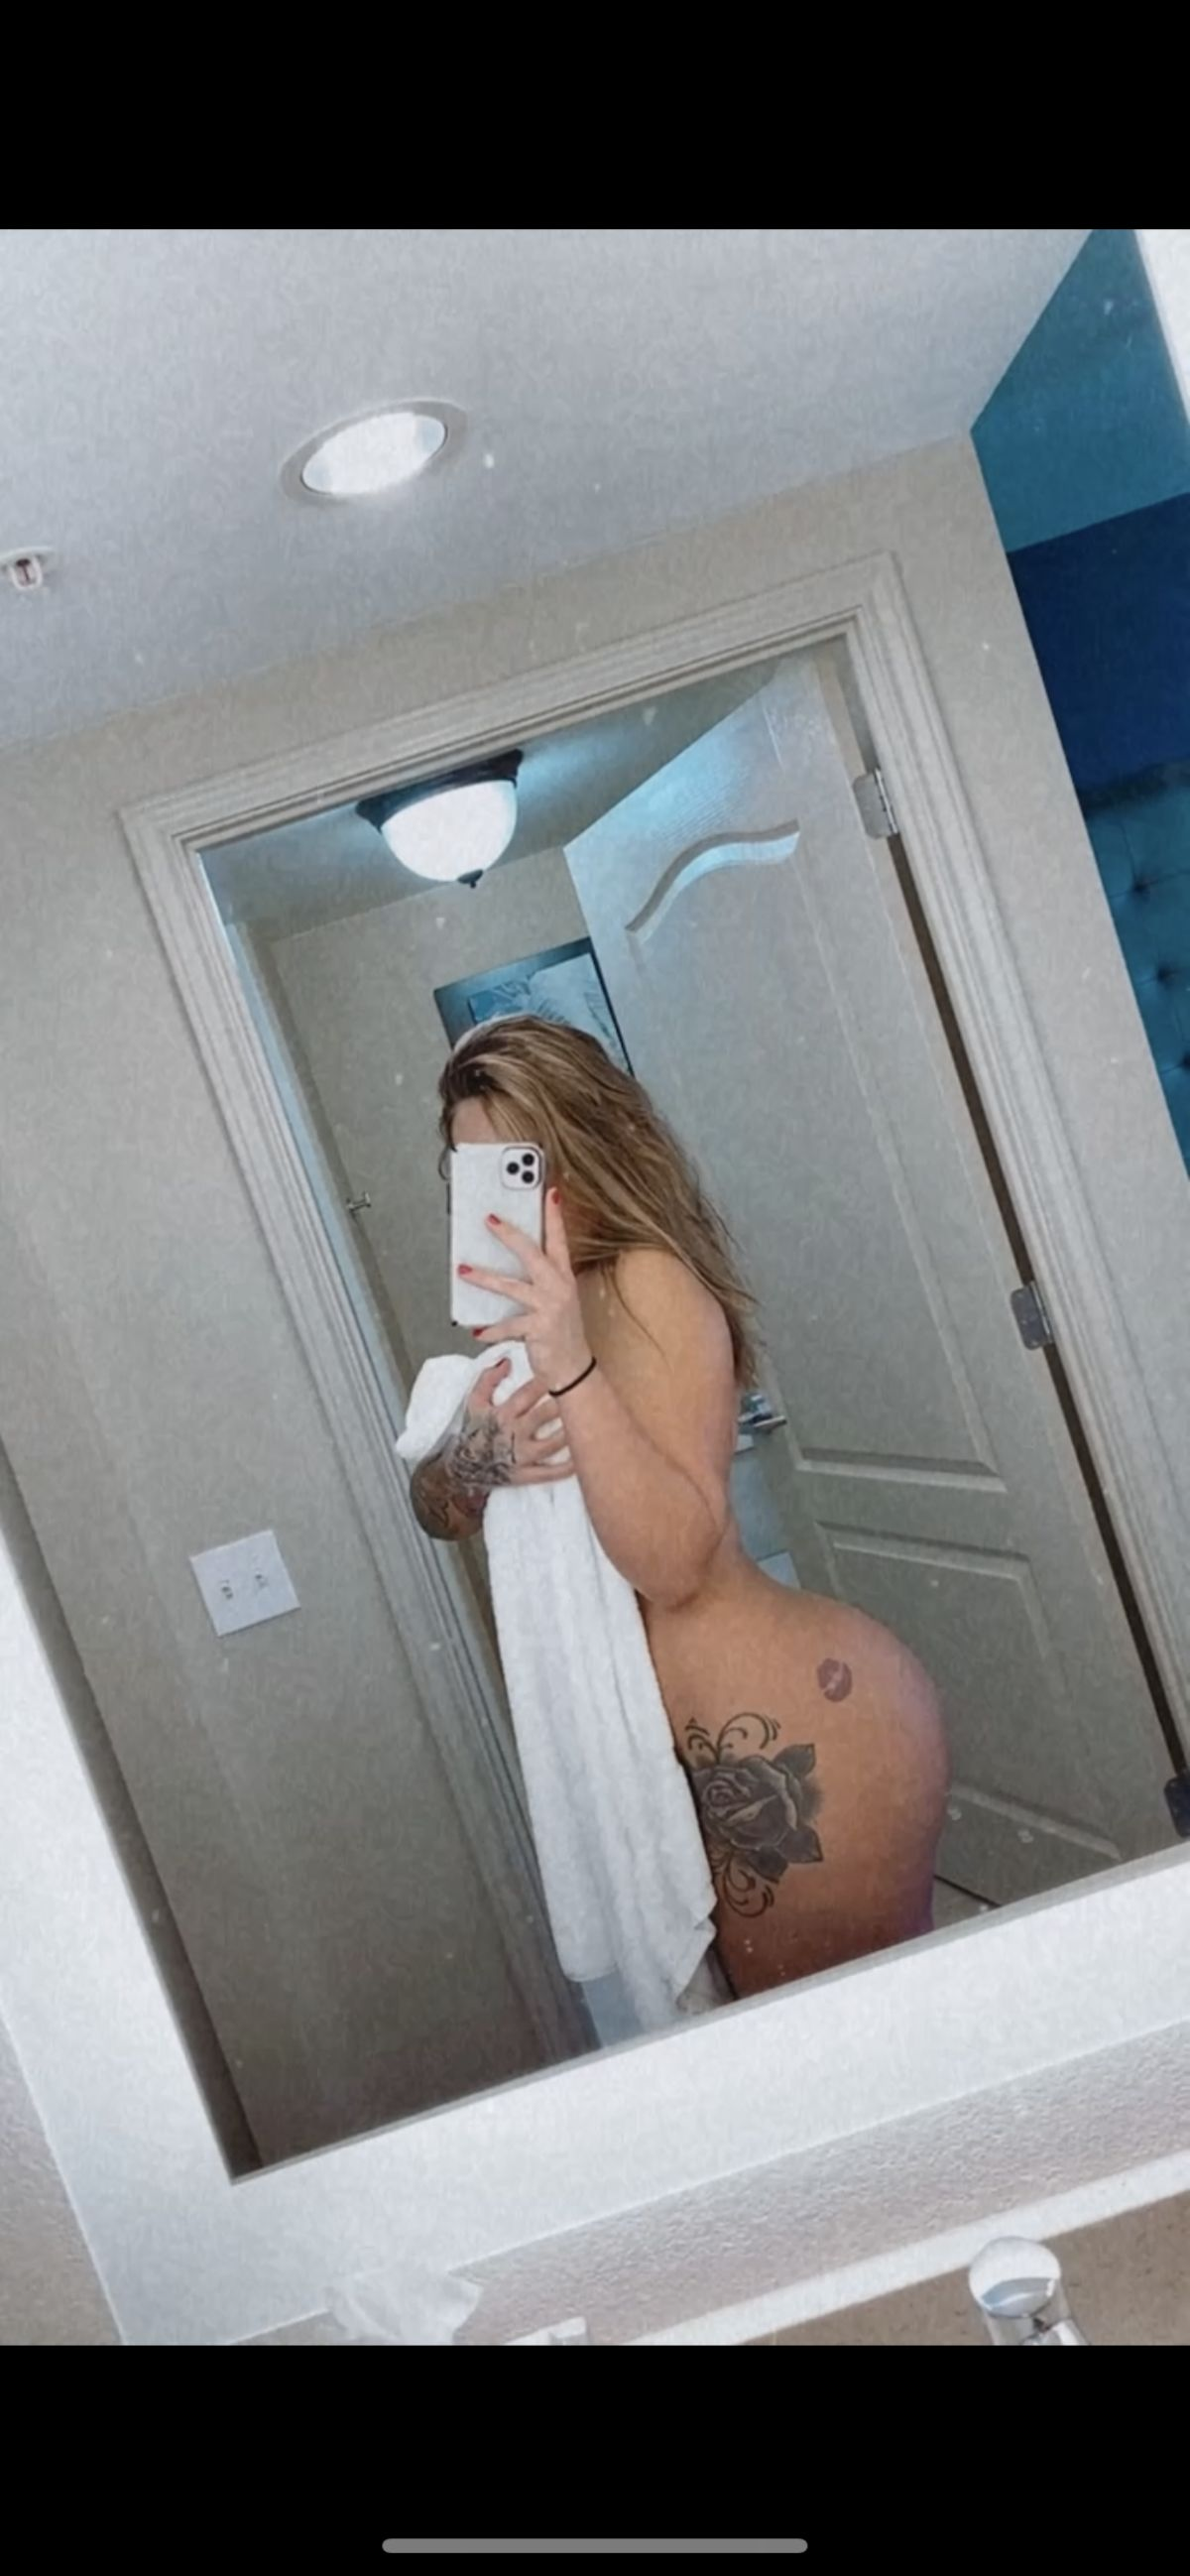 Free nudes of Spontaneous Beauty onlyfans leaked